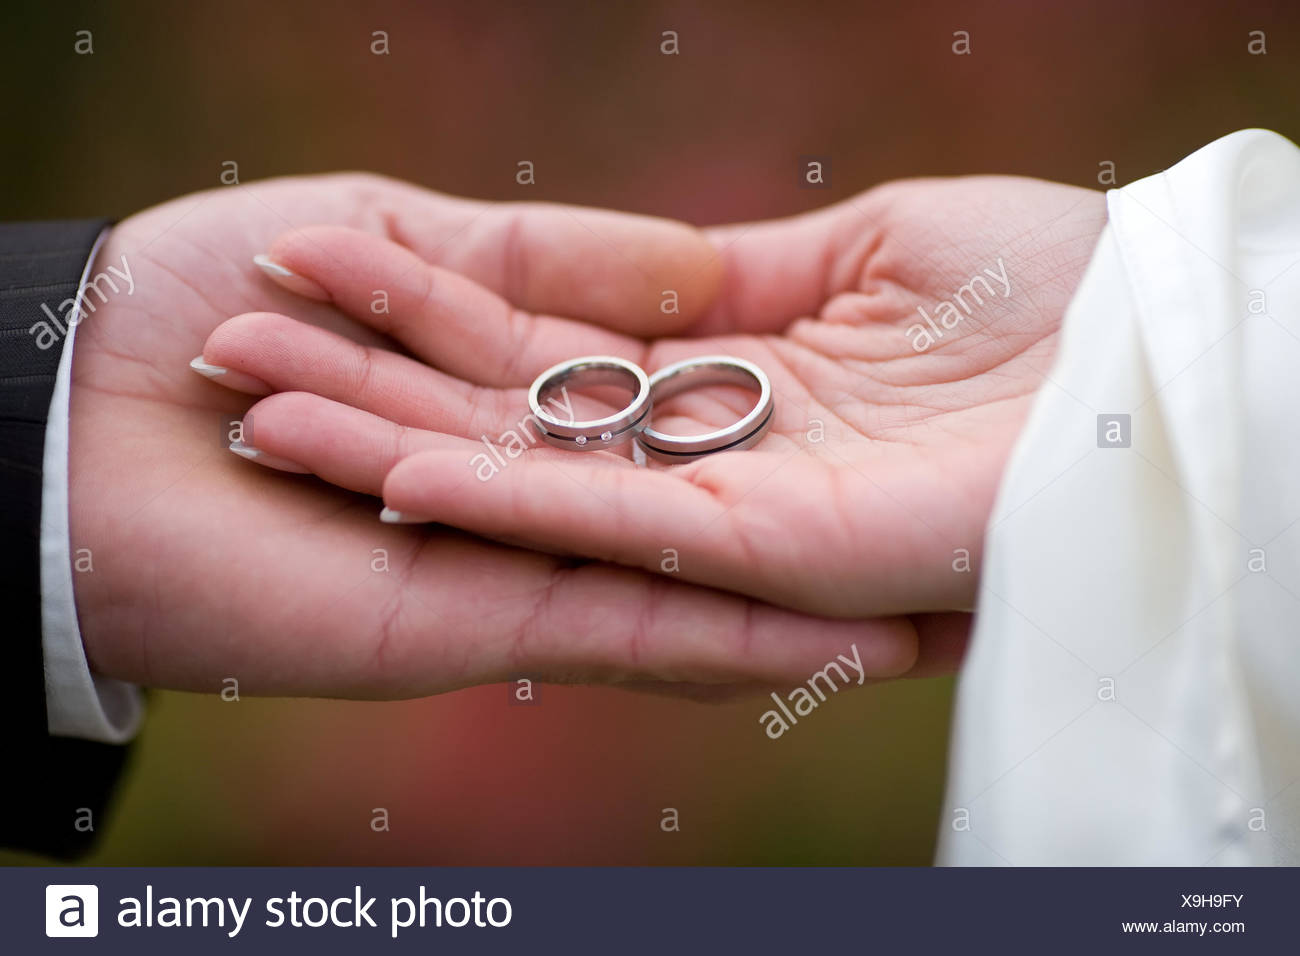 indicate show hand hands connected wedding marriage marriage ...